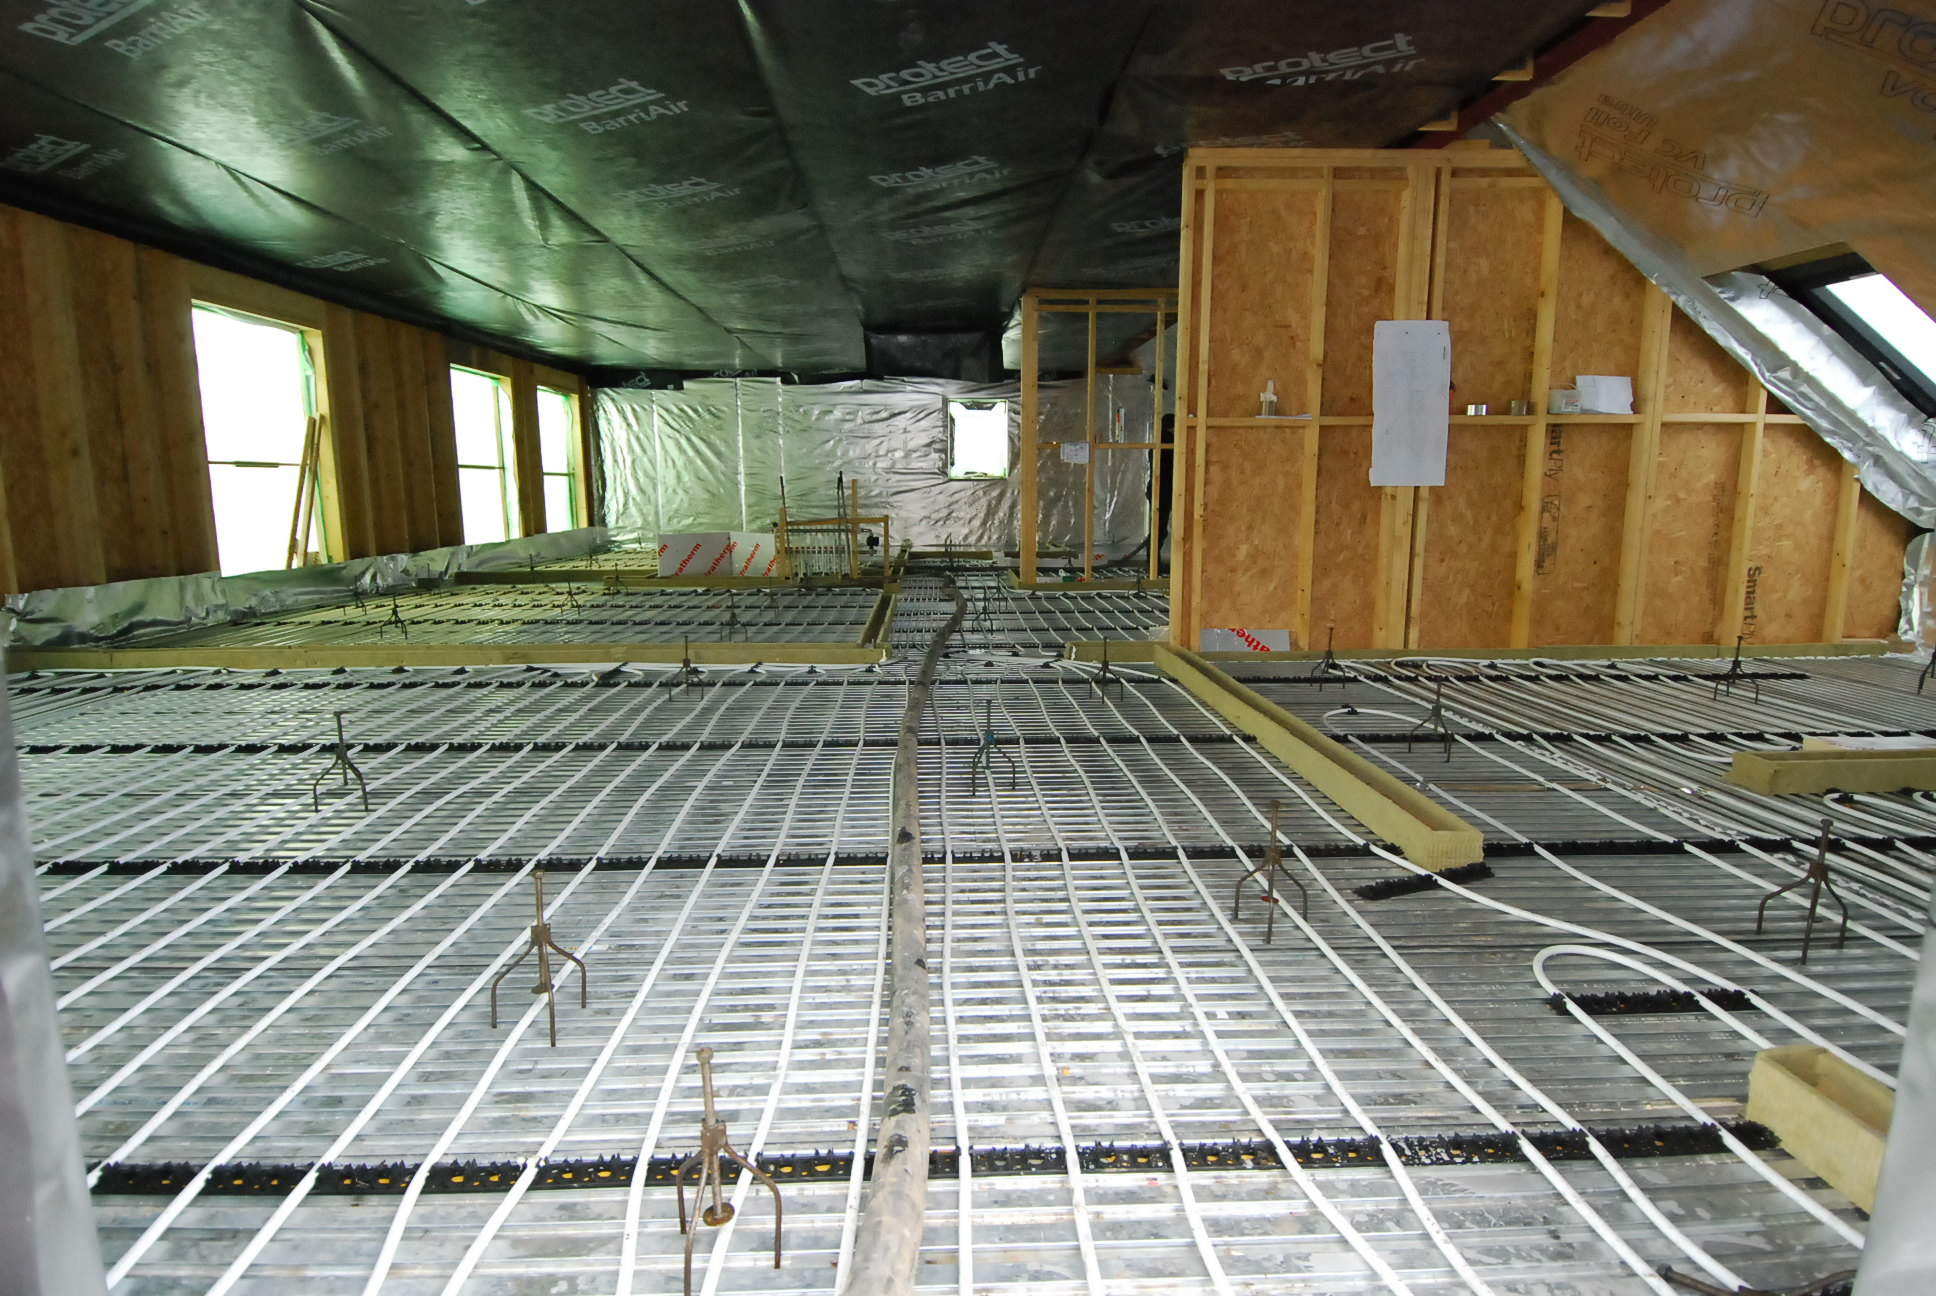 Underfloor Heating On Joisted Floors